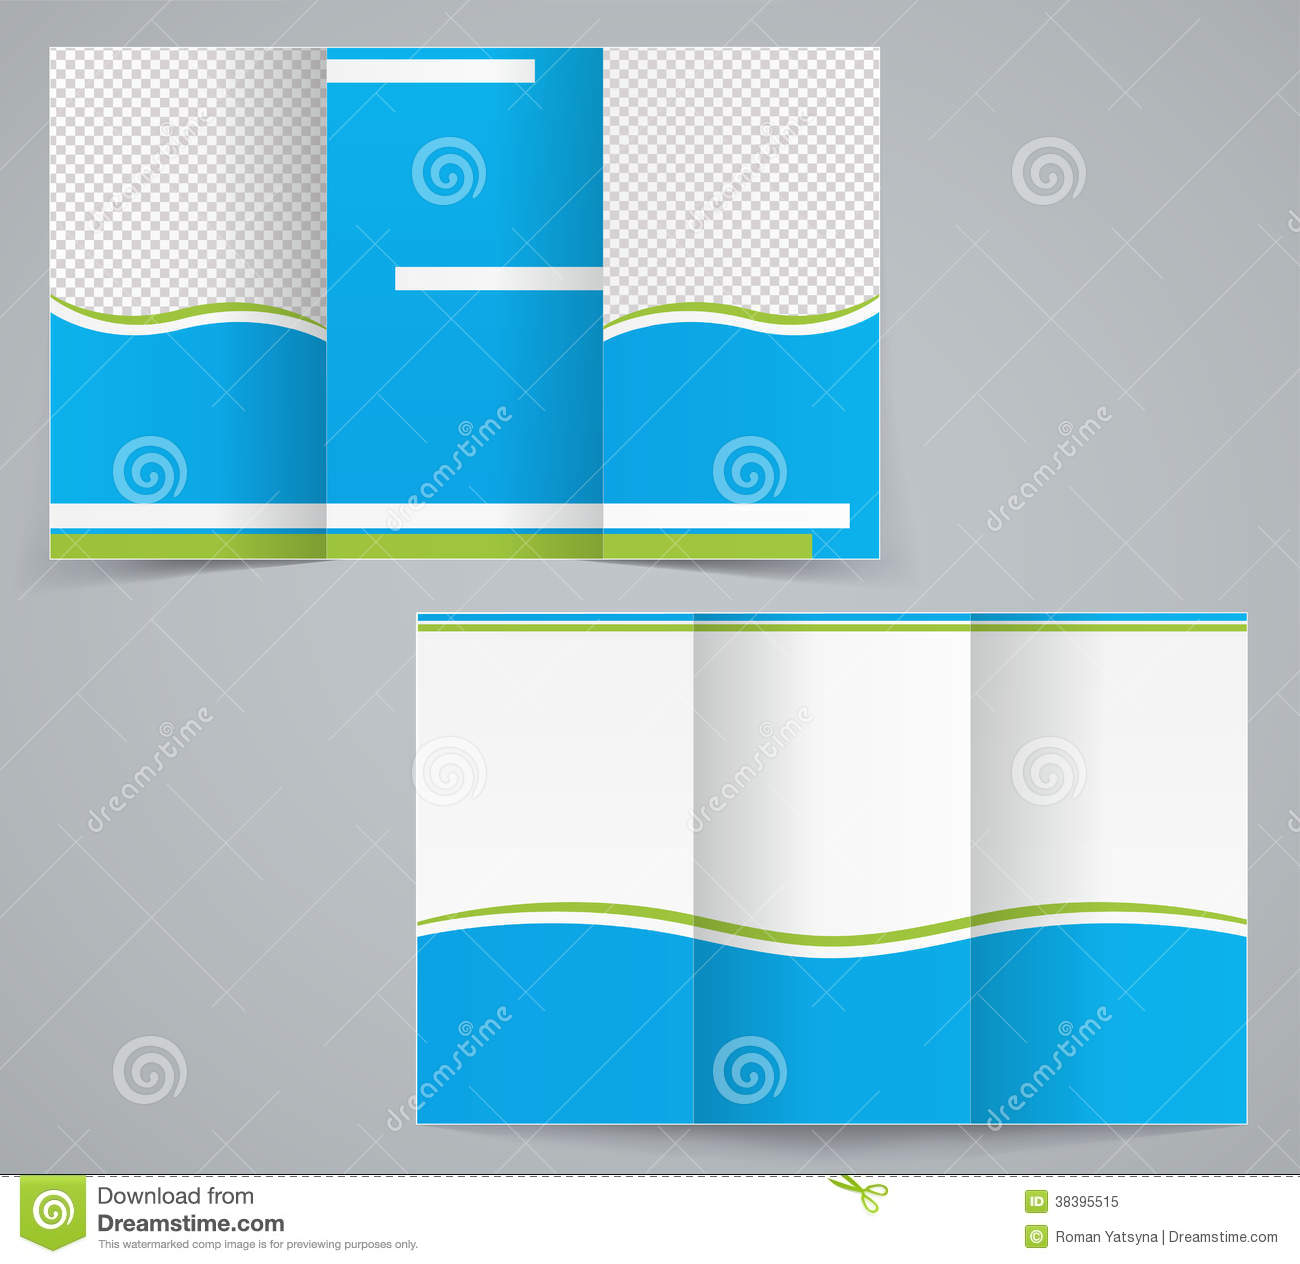 Tri-fold Business Brochure Template, Blue Design Stock Vector ...